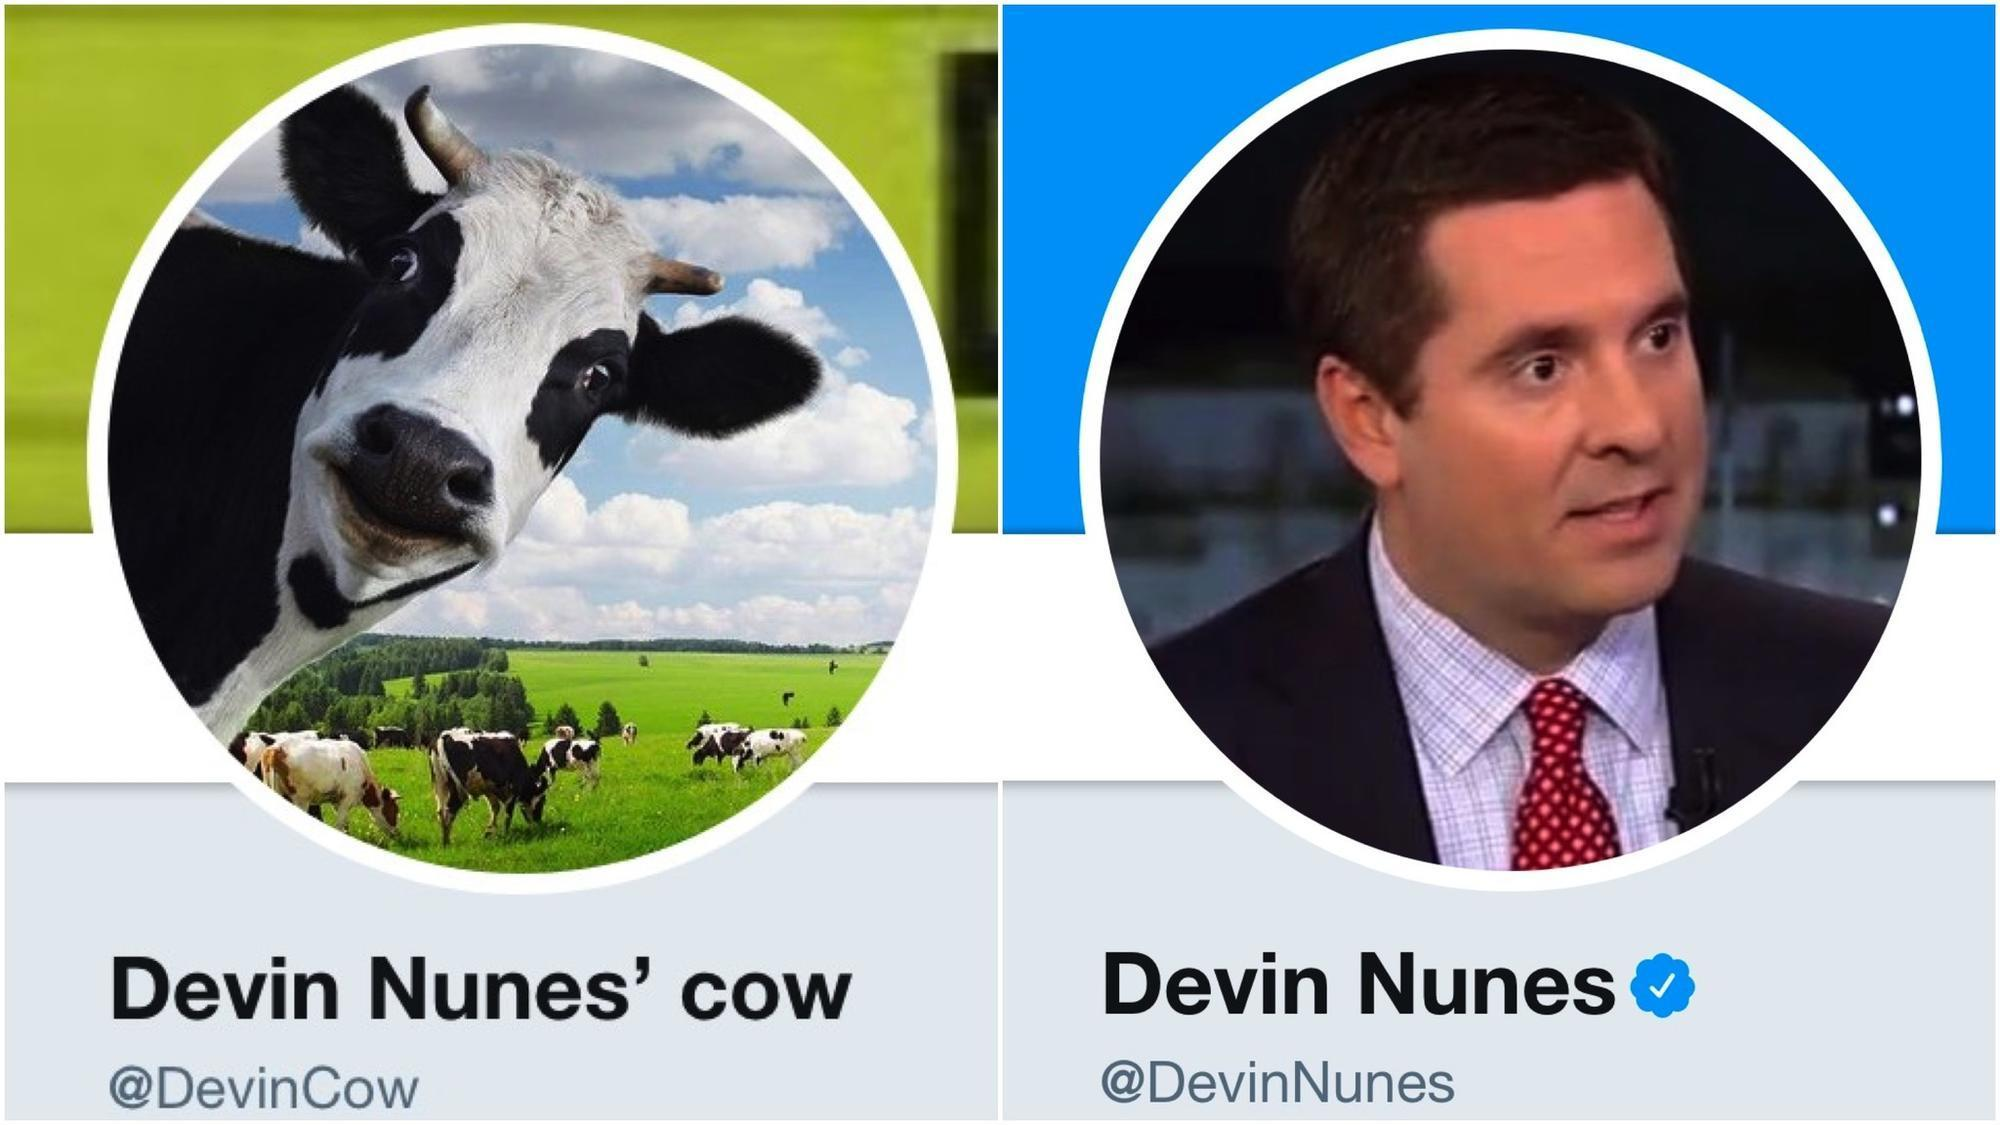 Devin Nunes sues a sassy cow on Twitter, and she gains a herd of followers